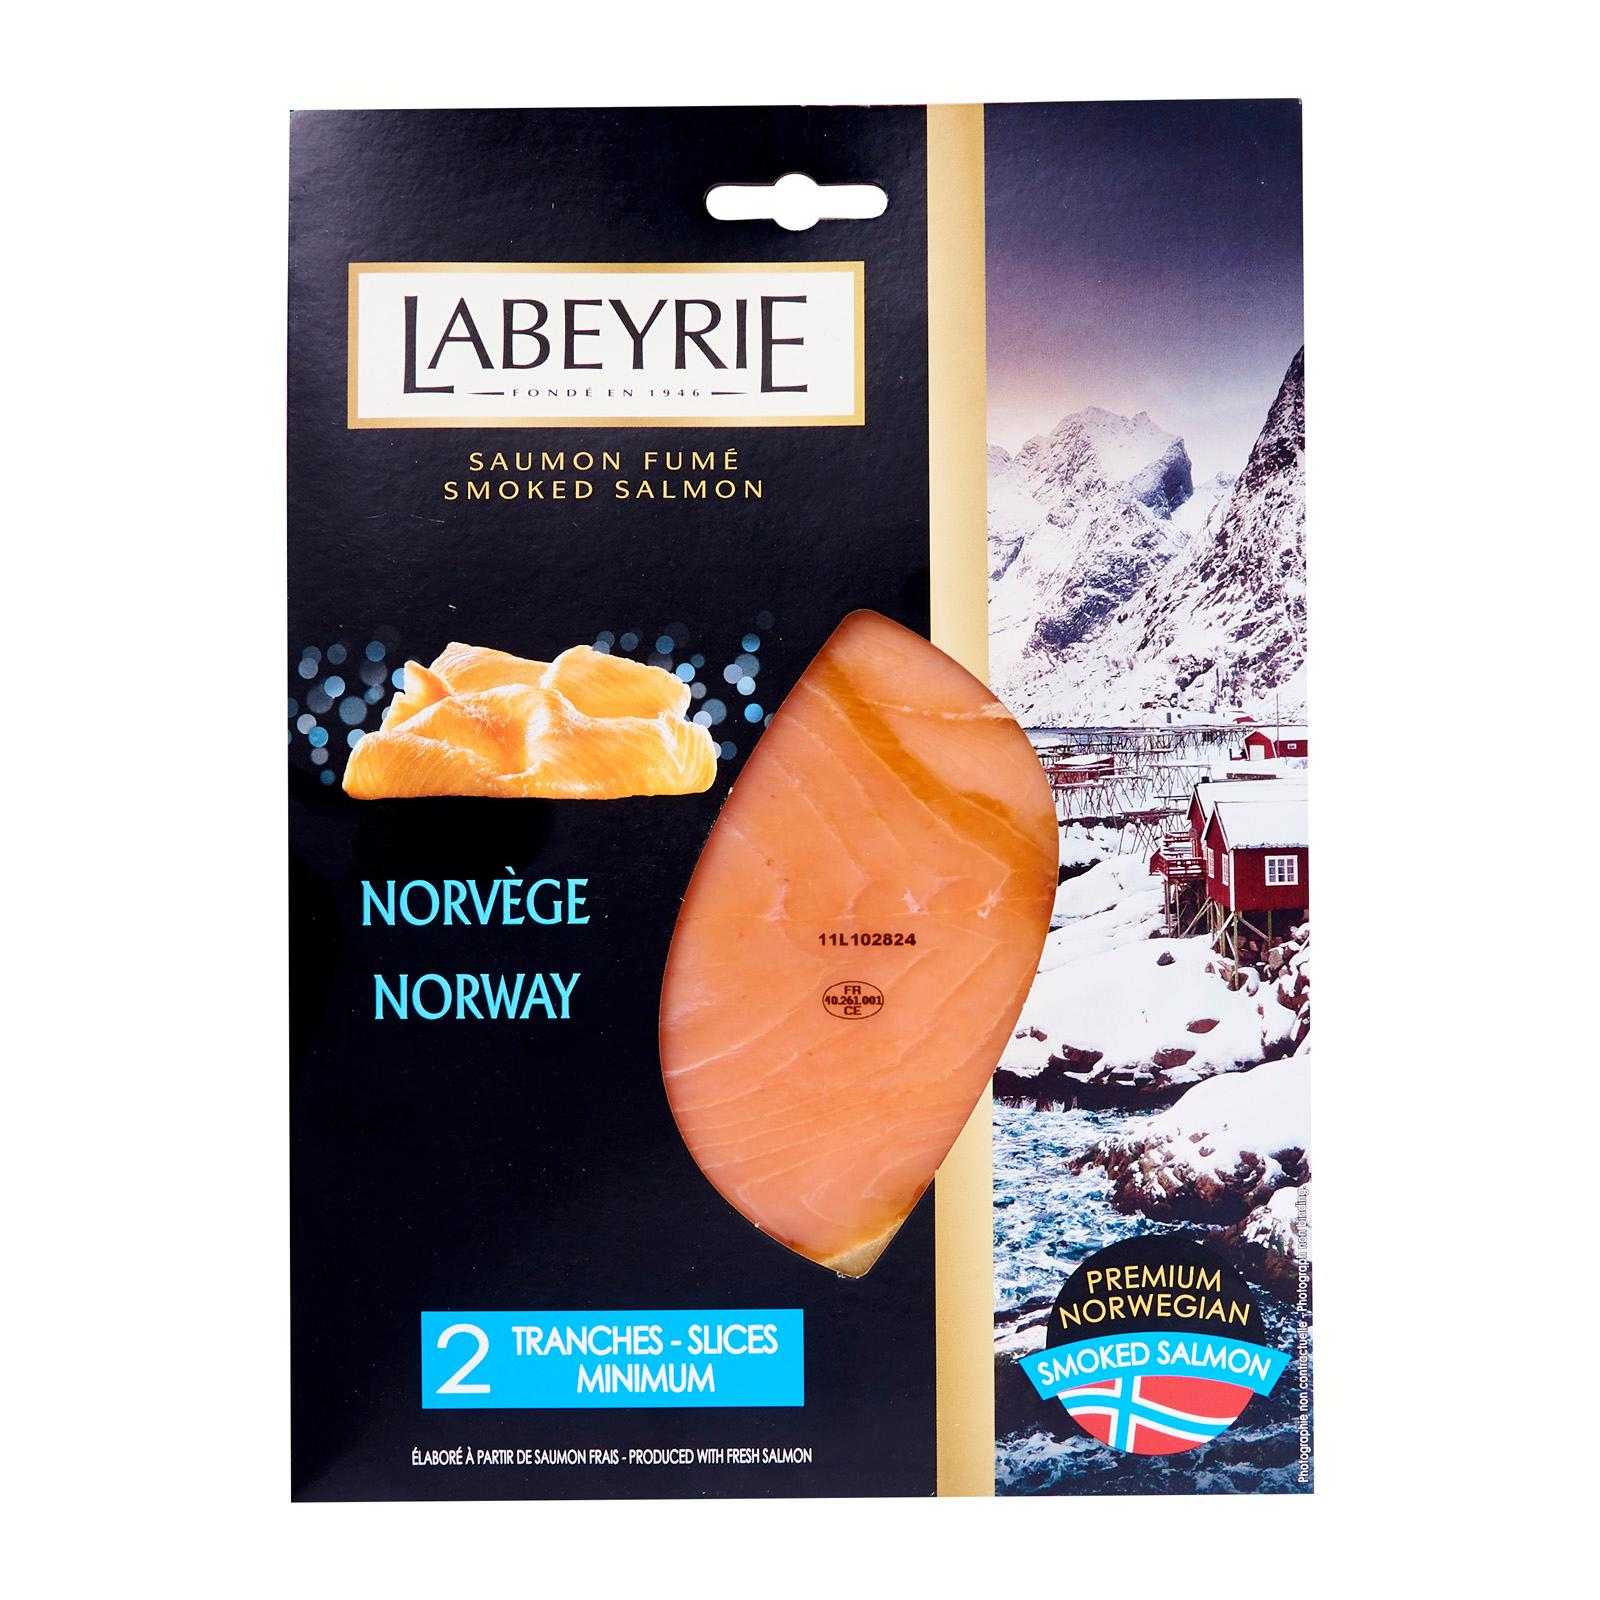 Labeyrie Norwegian Smoked Salmon - 2 Slices